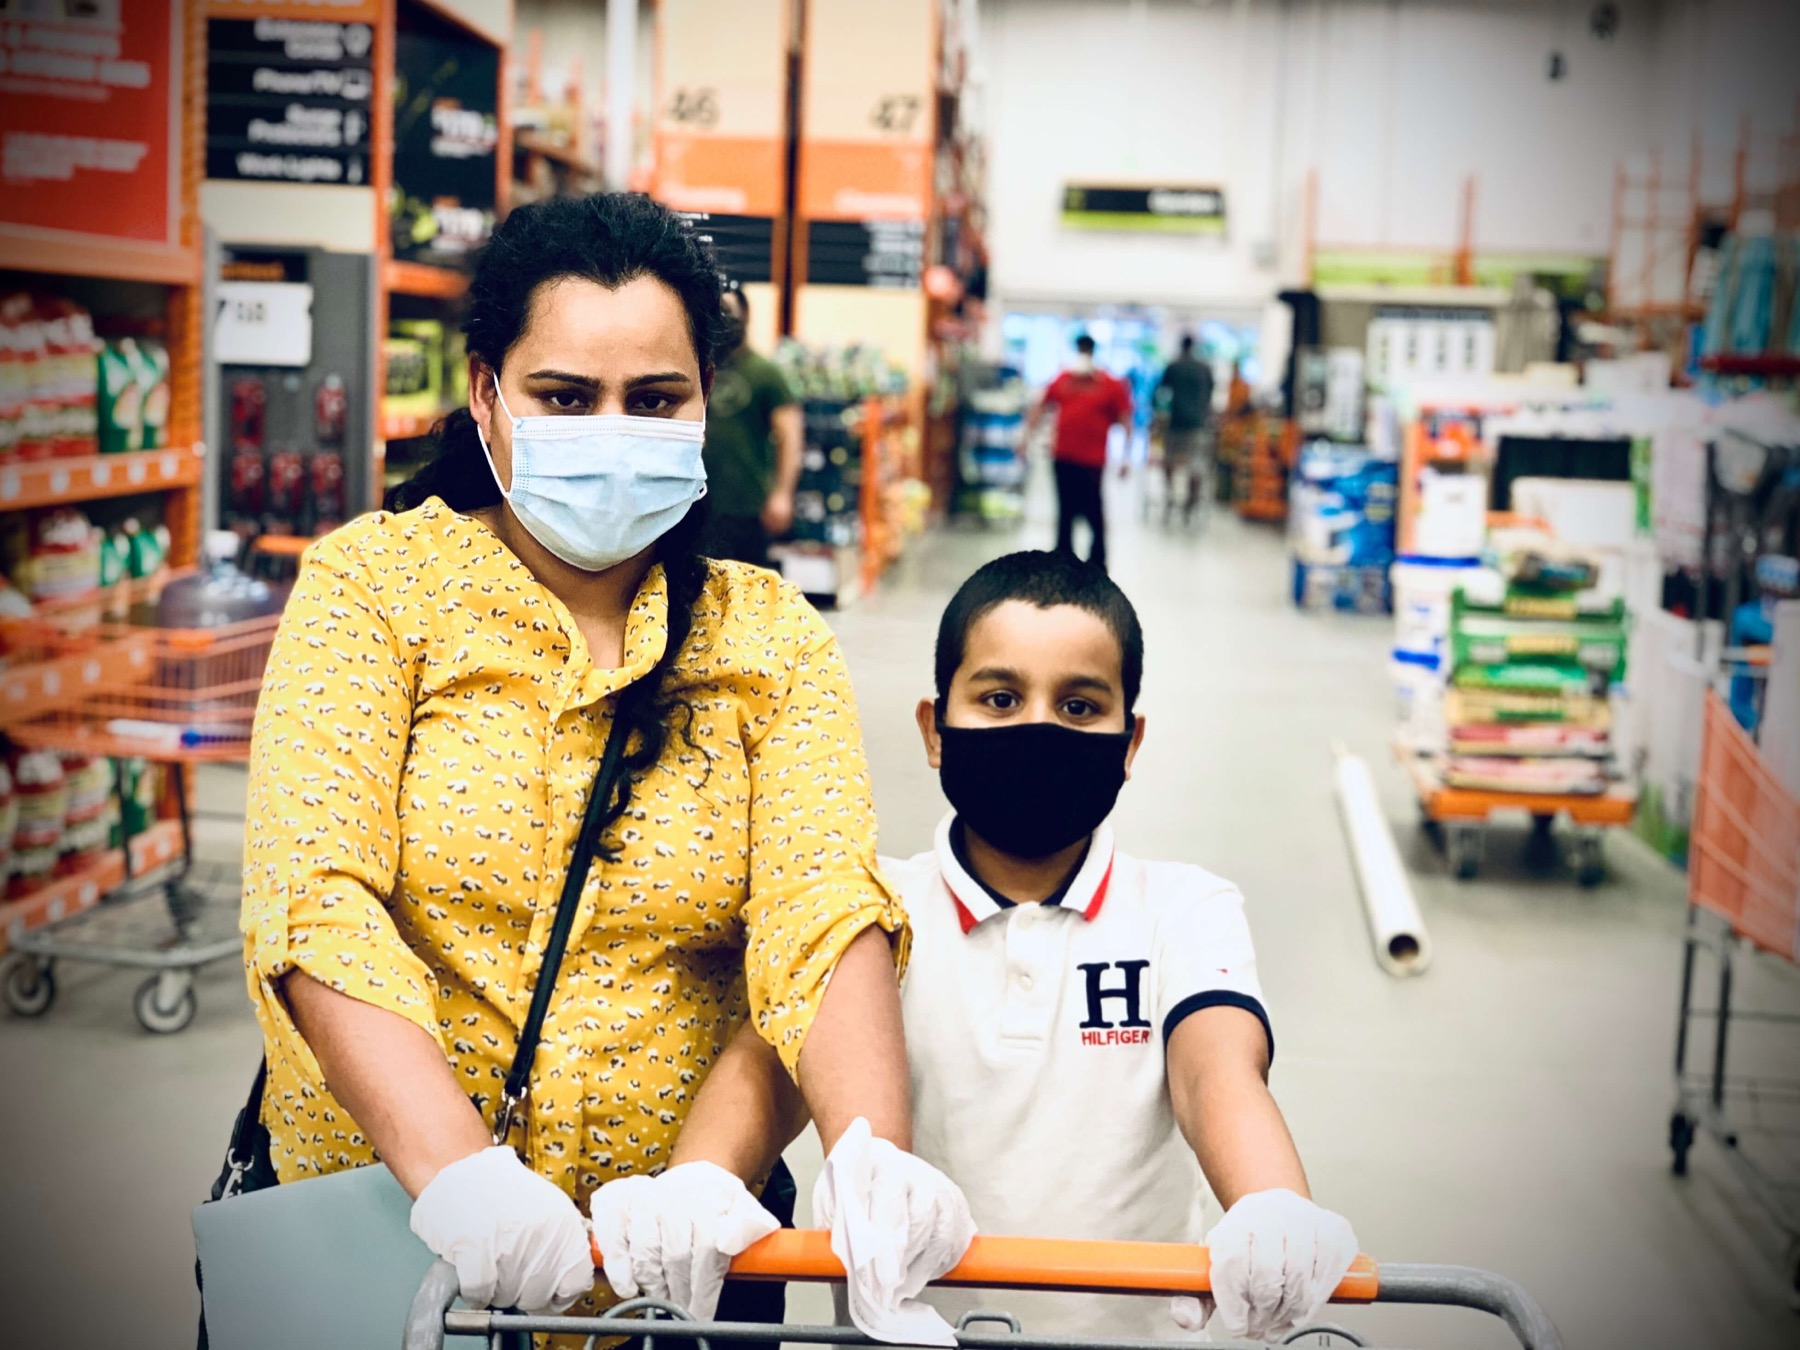 Mother and child pushing a cart through a grocery store while wearing protective masks